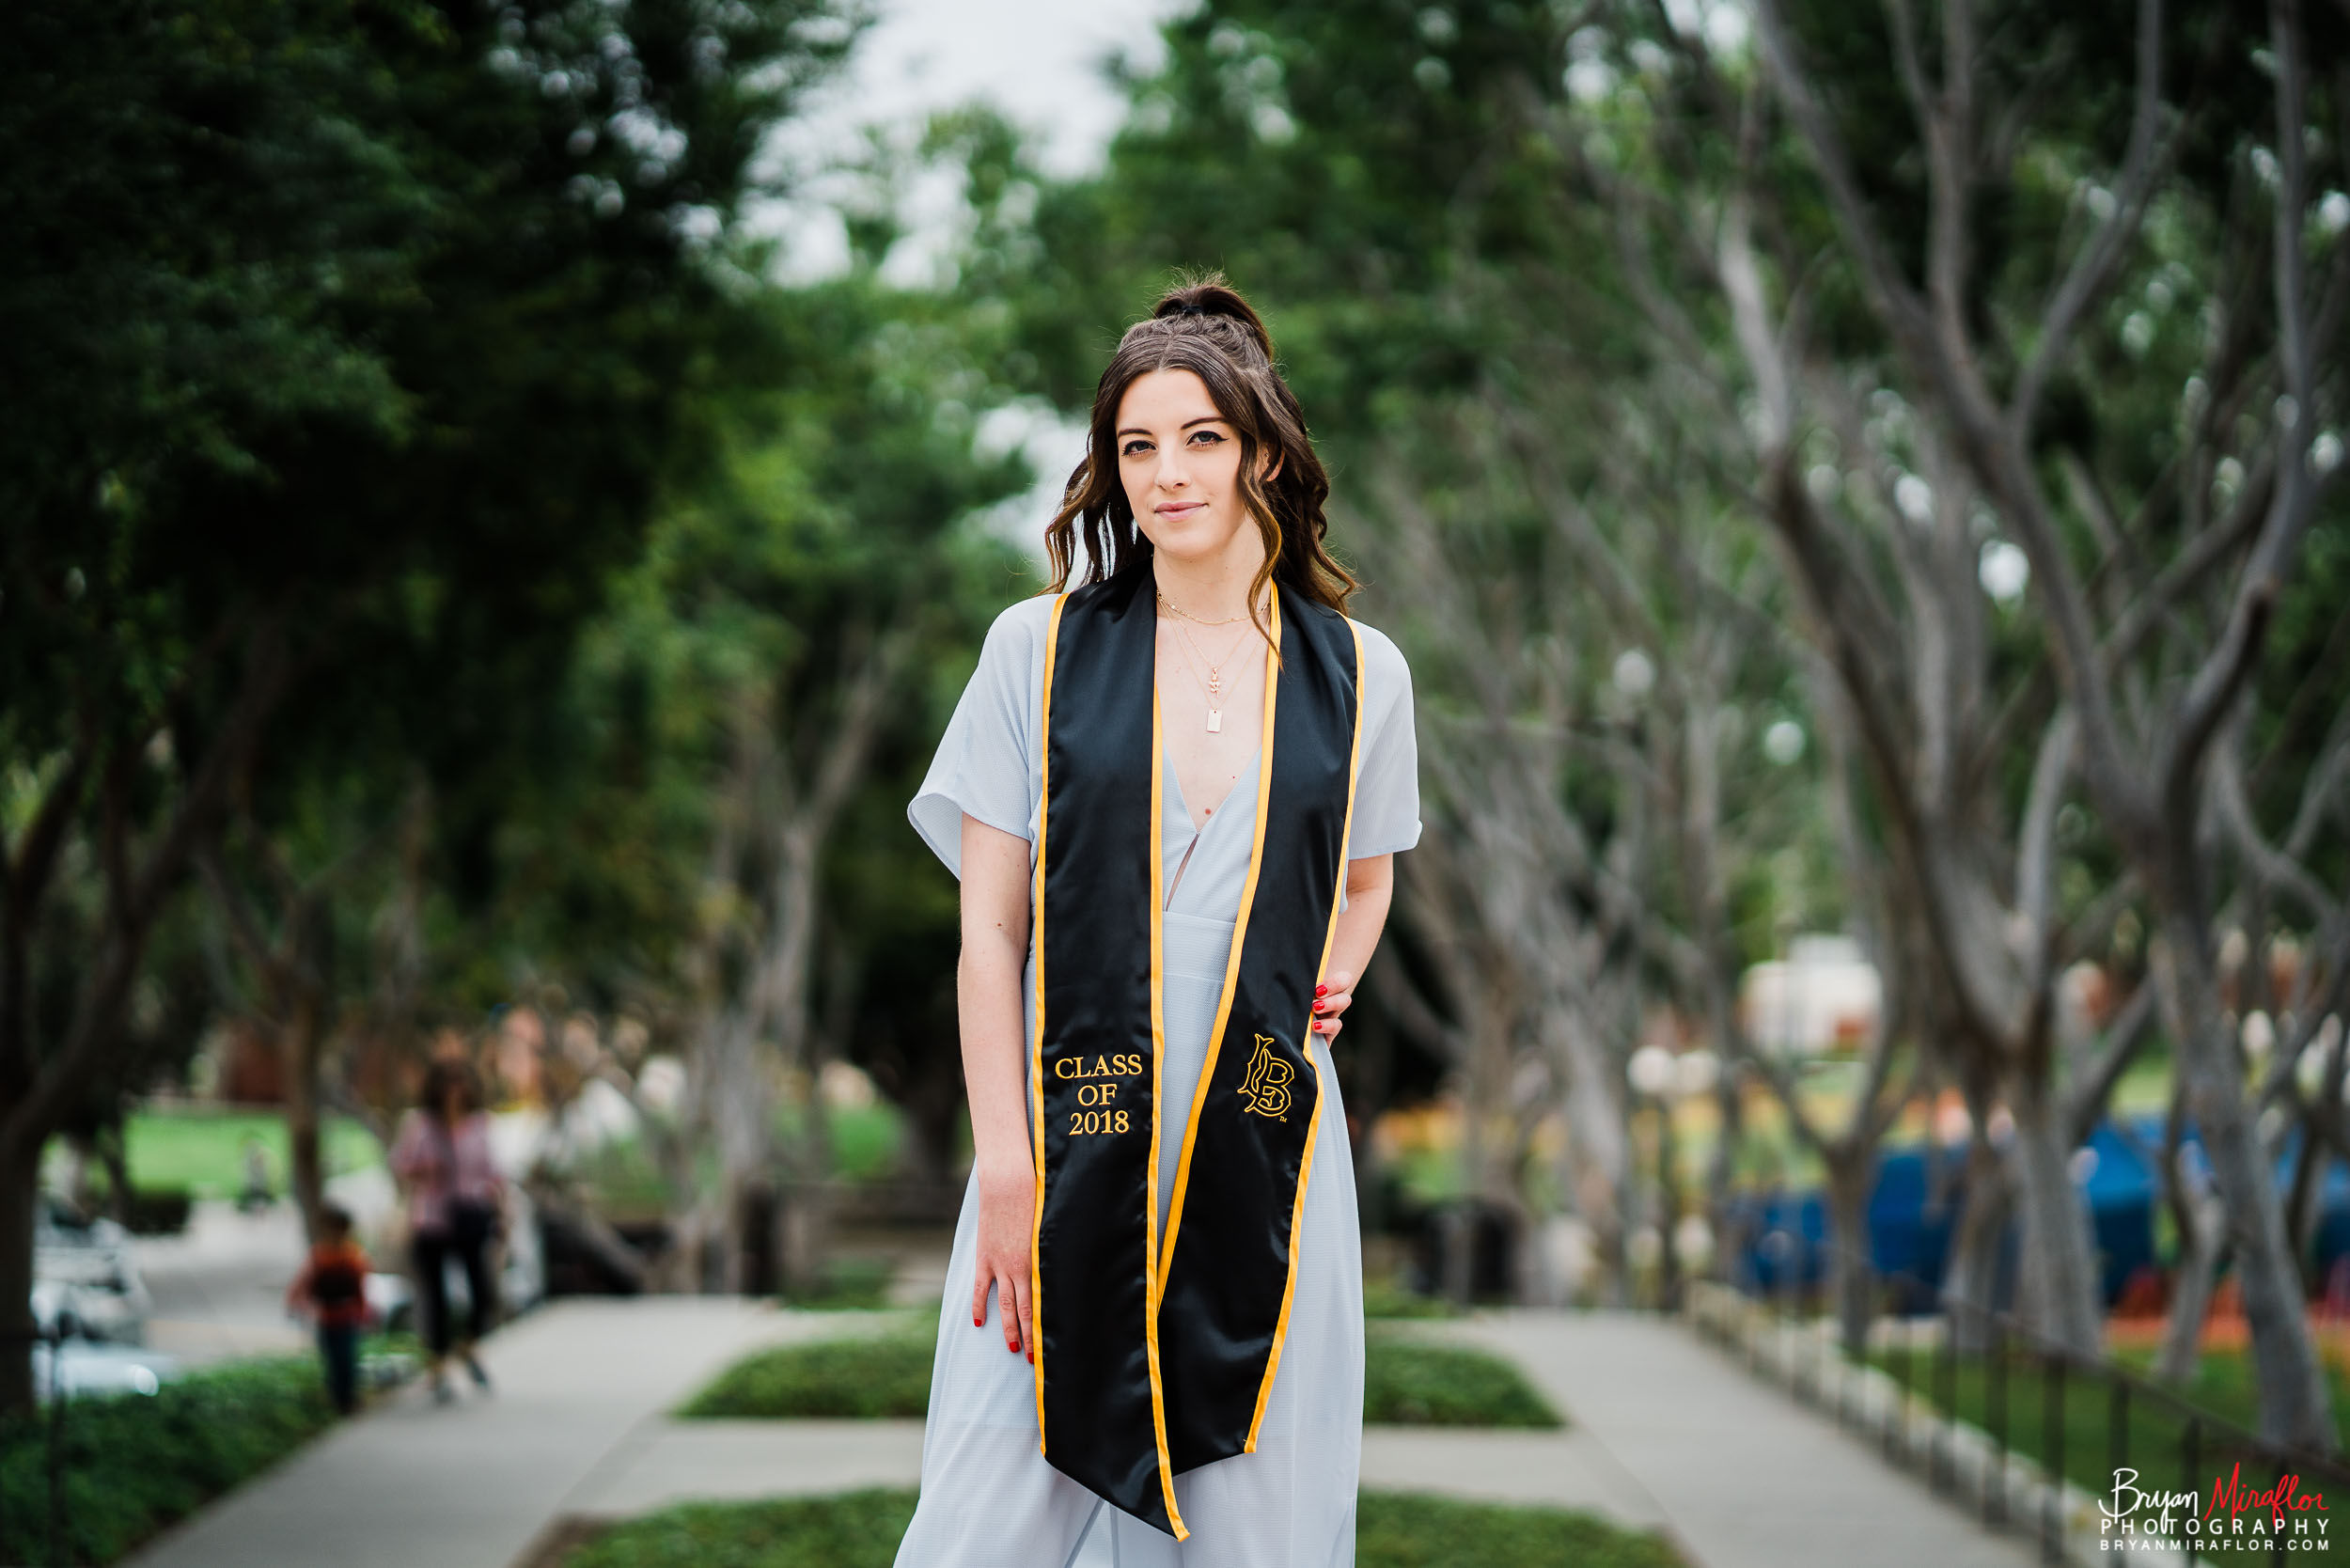 Bryan-Miraflor-Photography-CSULB-Long-Beach-Corinne-Grad-Photos-20180521-079.JPG